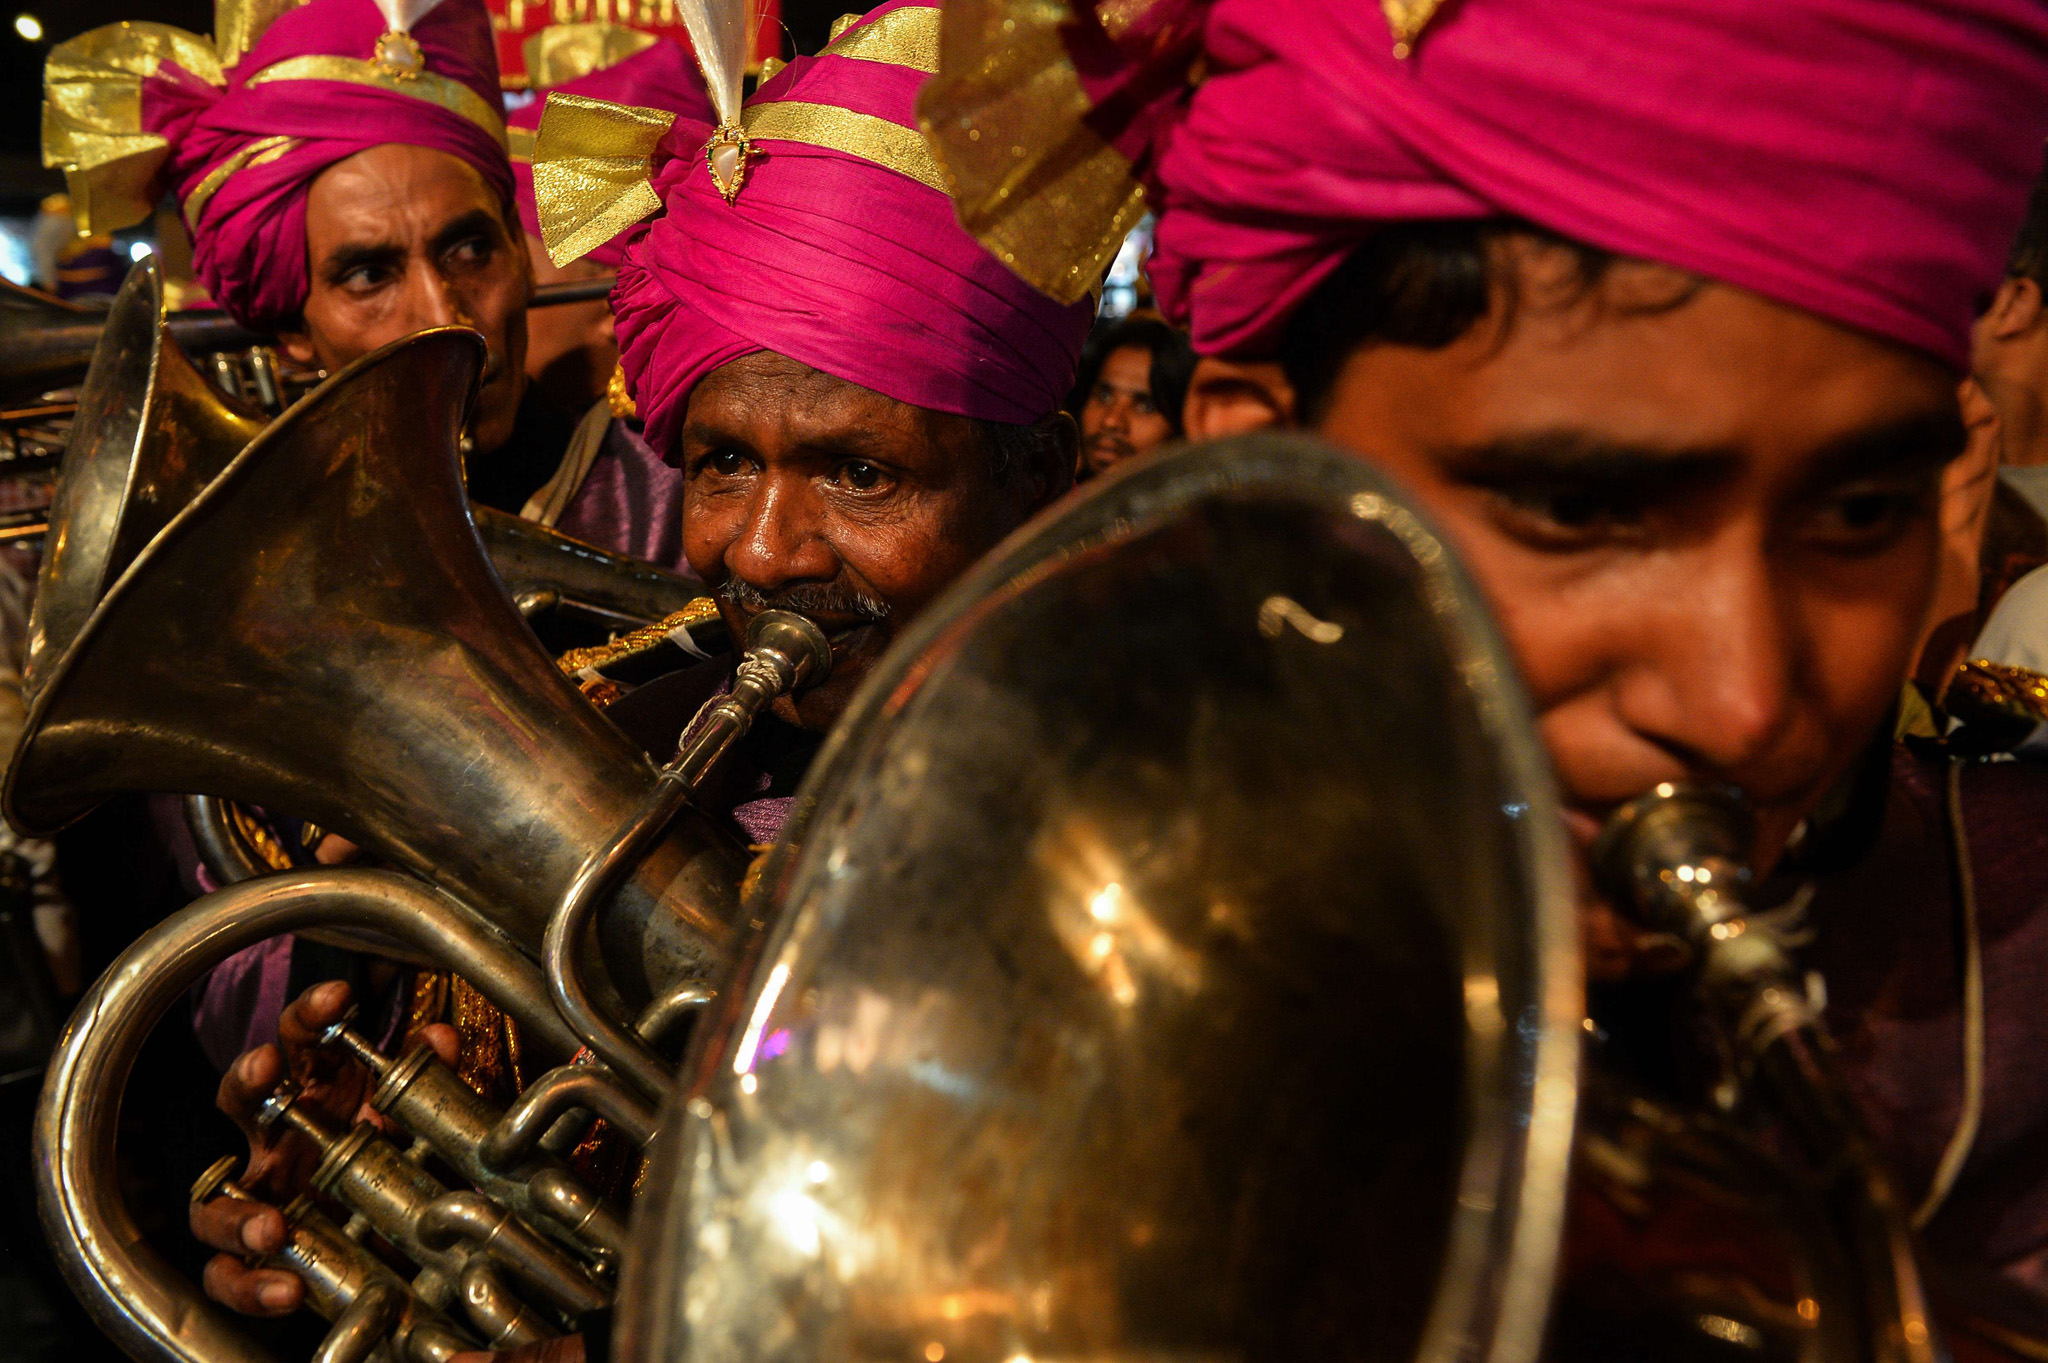 Members of an Indian wedding band play brass instruments during a religious procession for the Hindu festival Ganesh Chaturthi in New Delhi